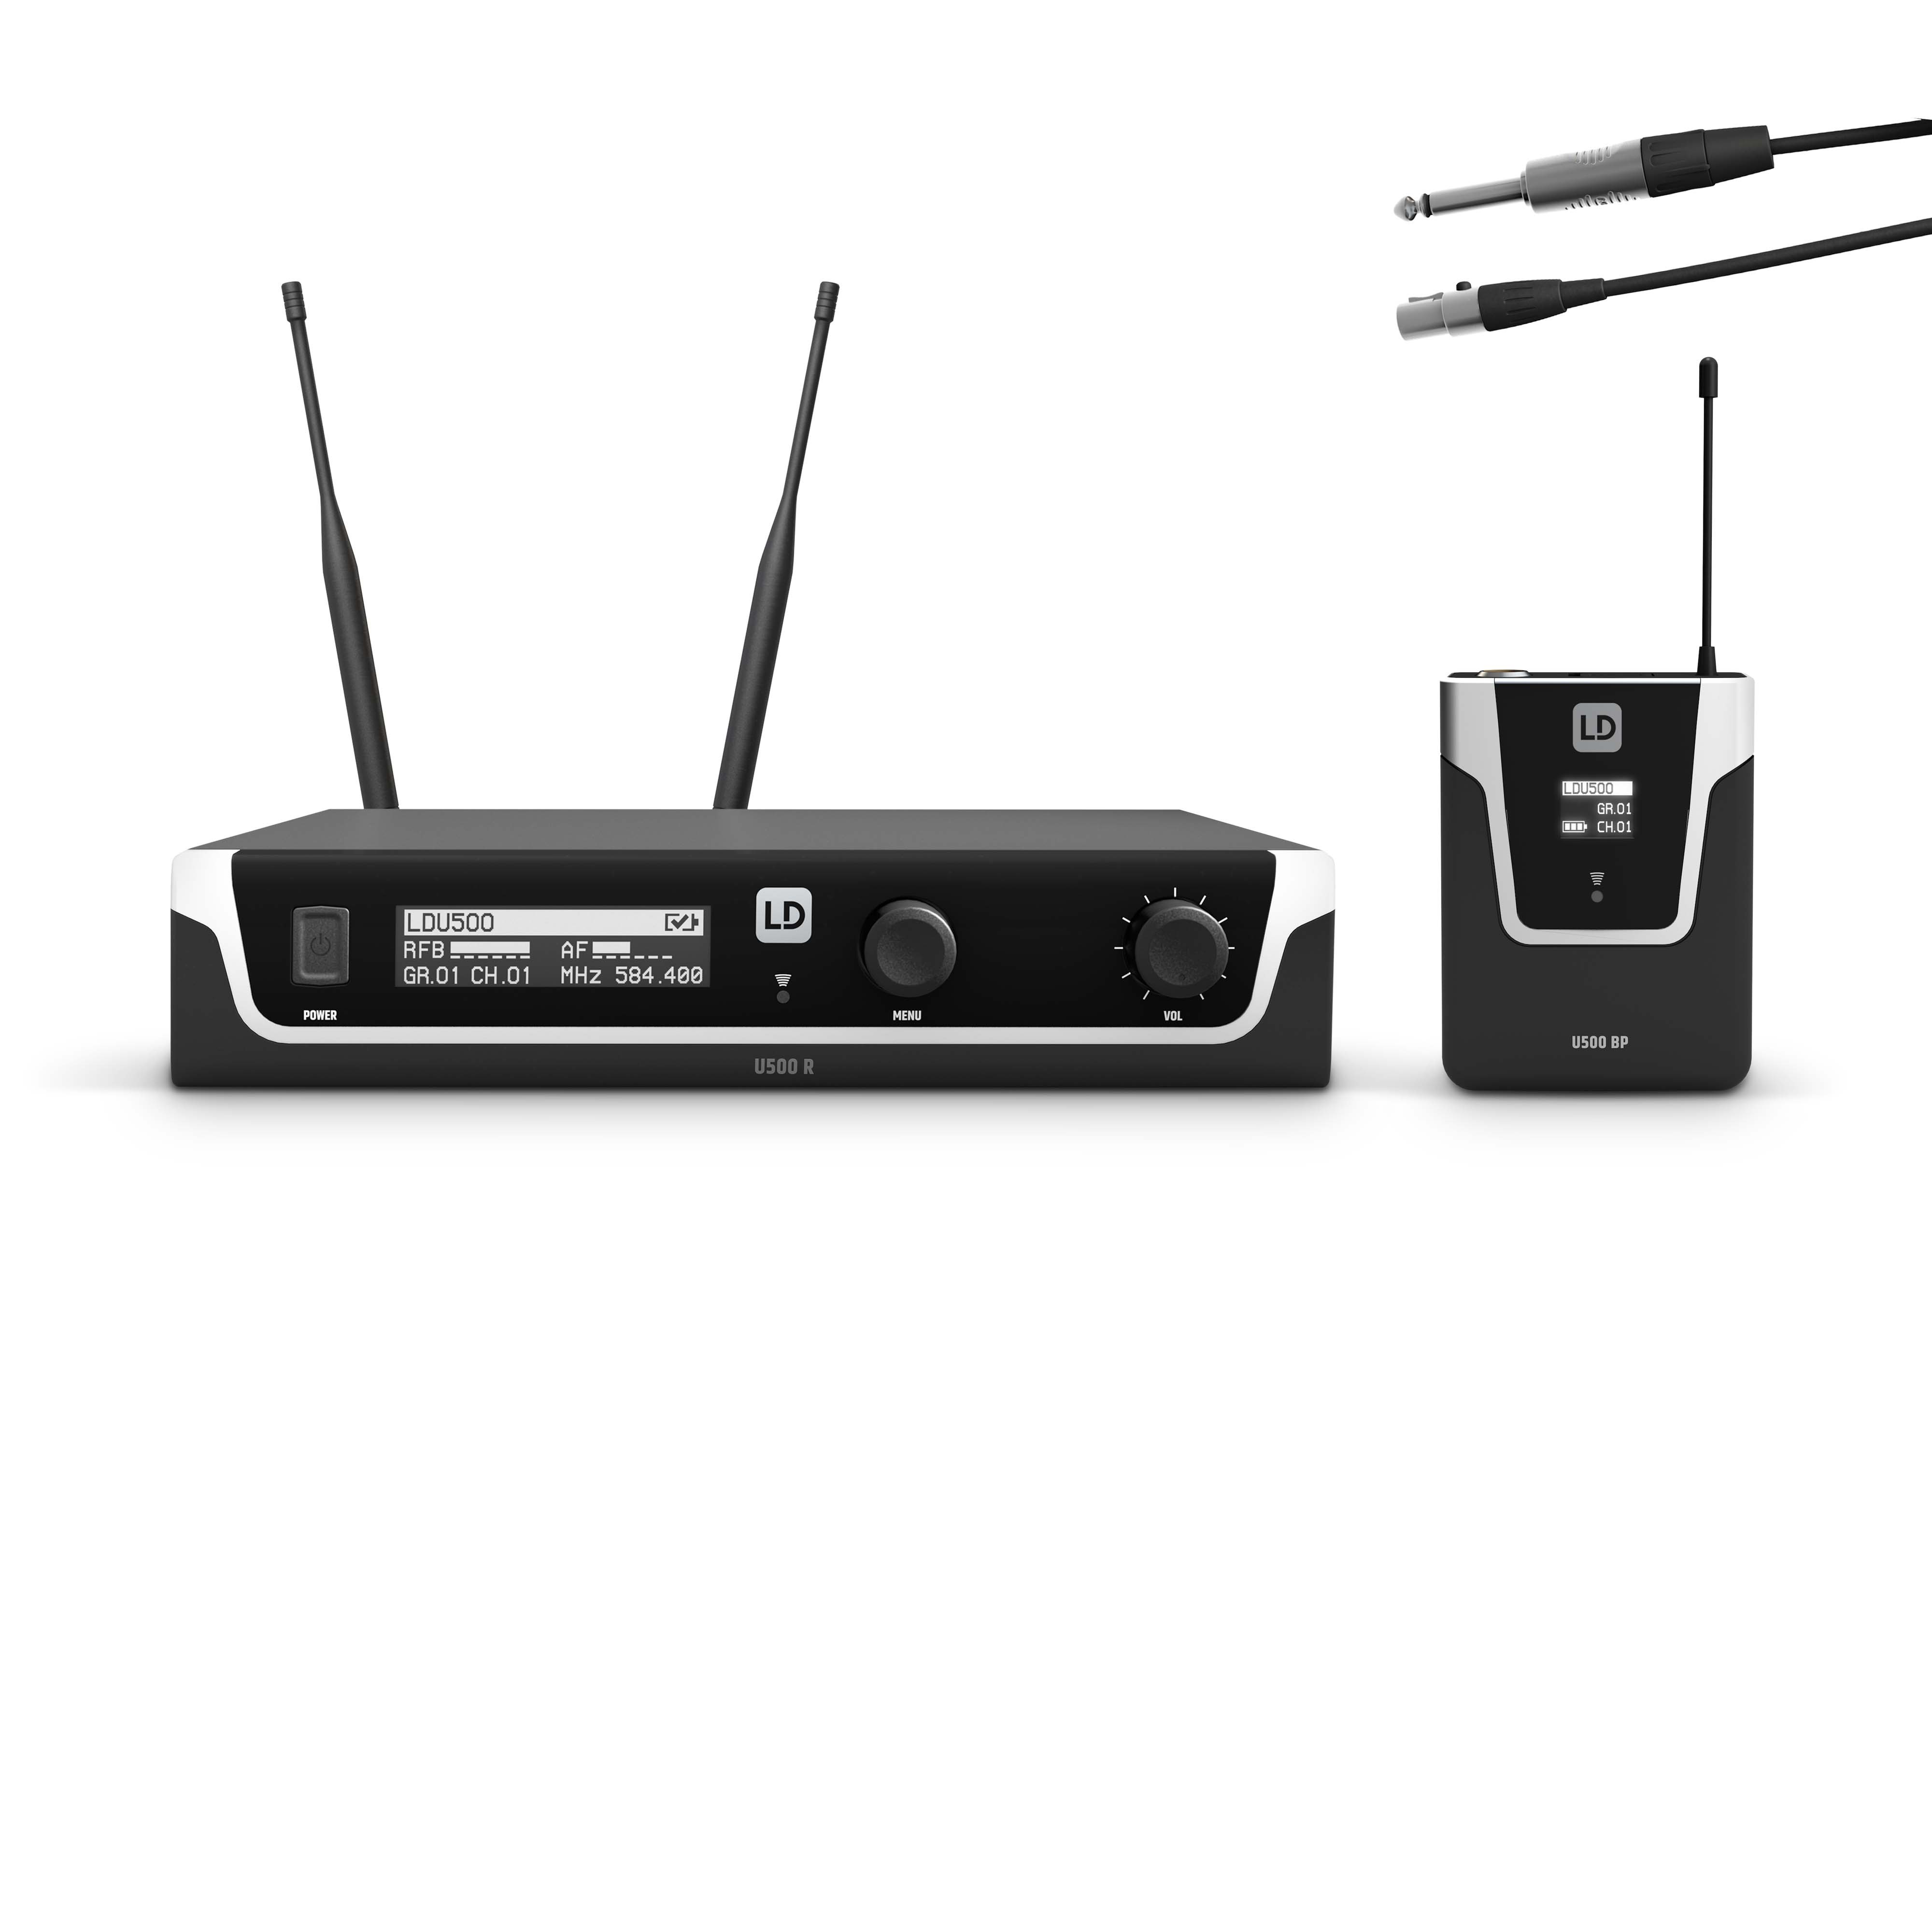 U506 UK BPG Wireless Microphone System with Bodypack and Guitar Cable